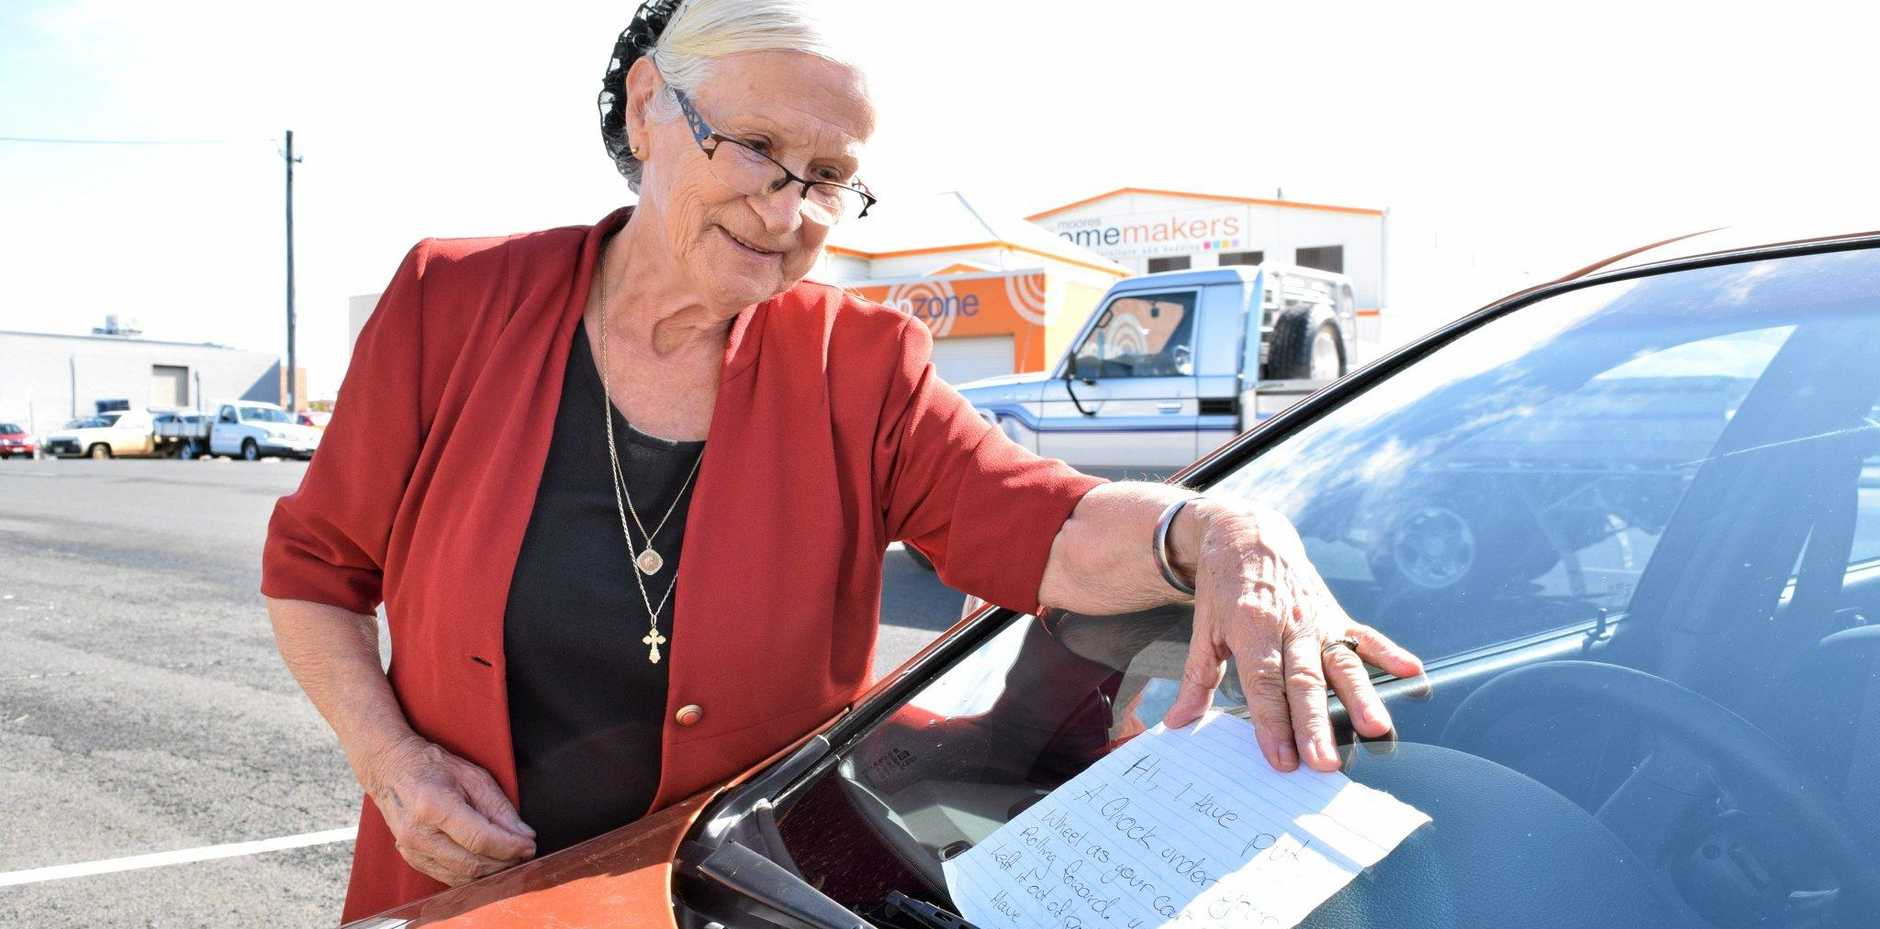 KINDNESS OF A STRANGER: Lin Linhert has thanked the Good Samaritan who saved her car.